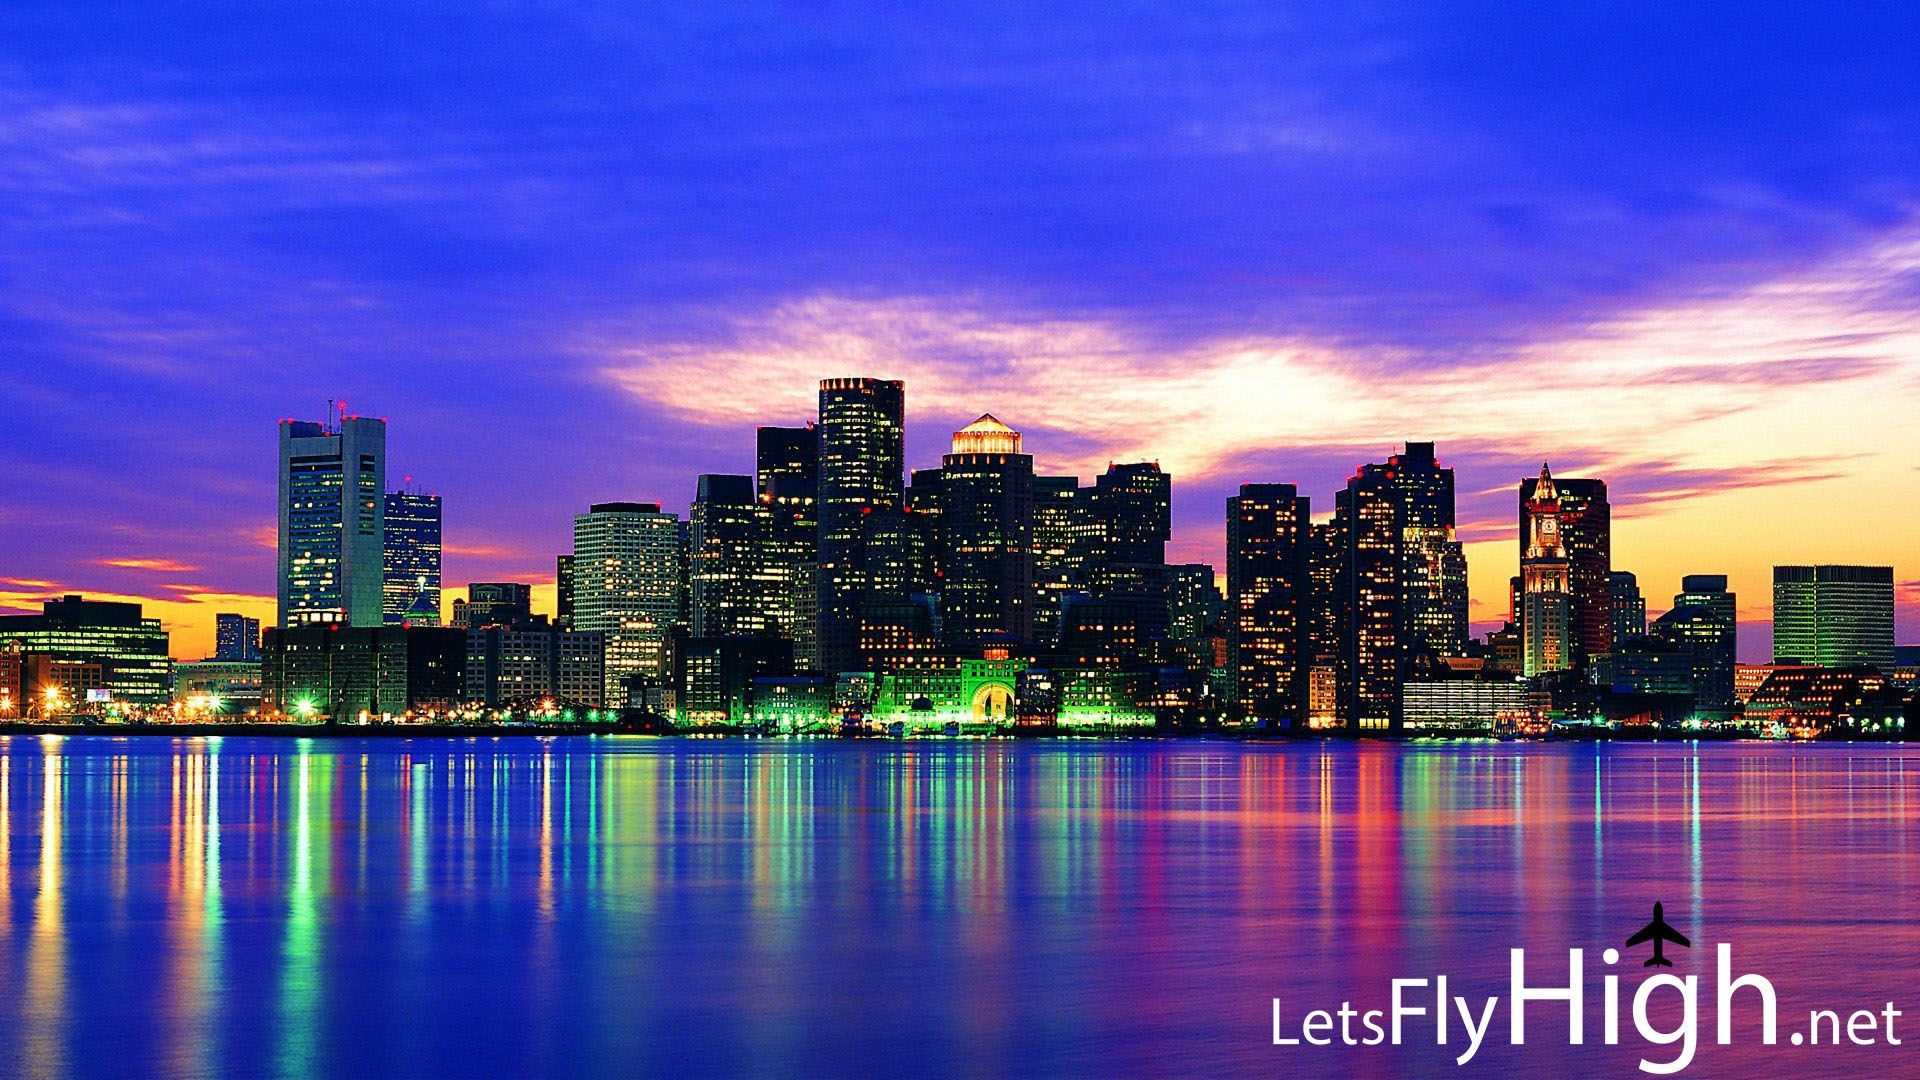 Pin By Letsflyhigh Budget Travel C On Traveling On A Budget Travel Guides Photography Boston Skyline Boston Wallpaper Miami Skyline